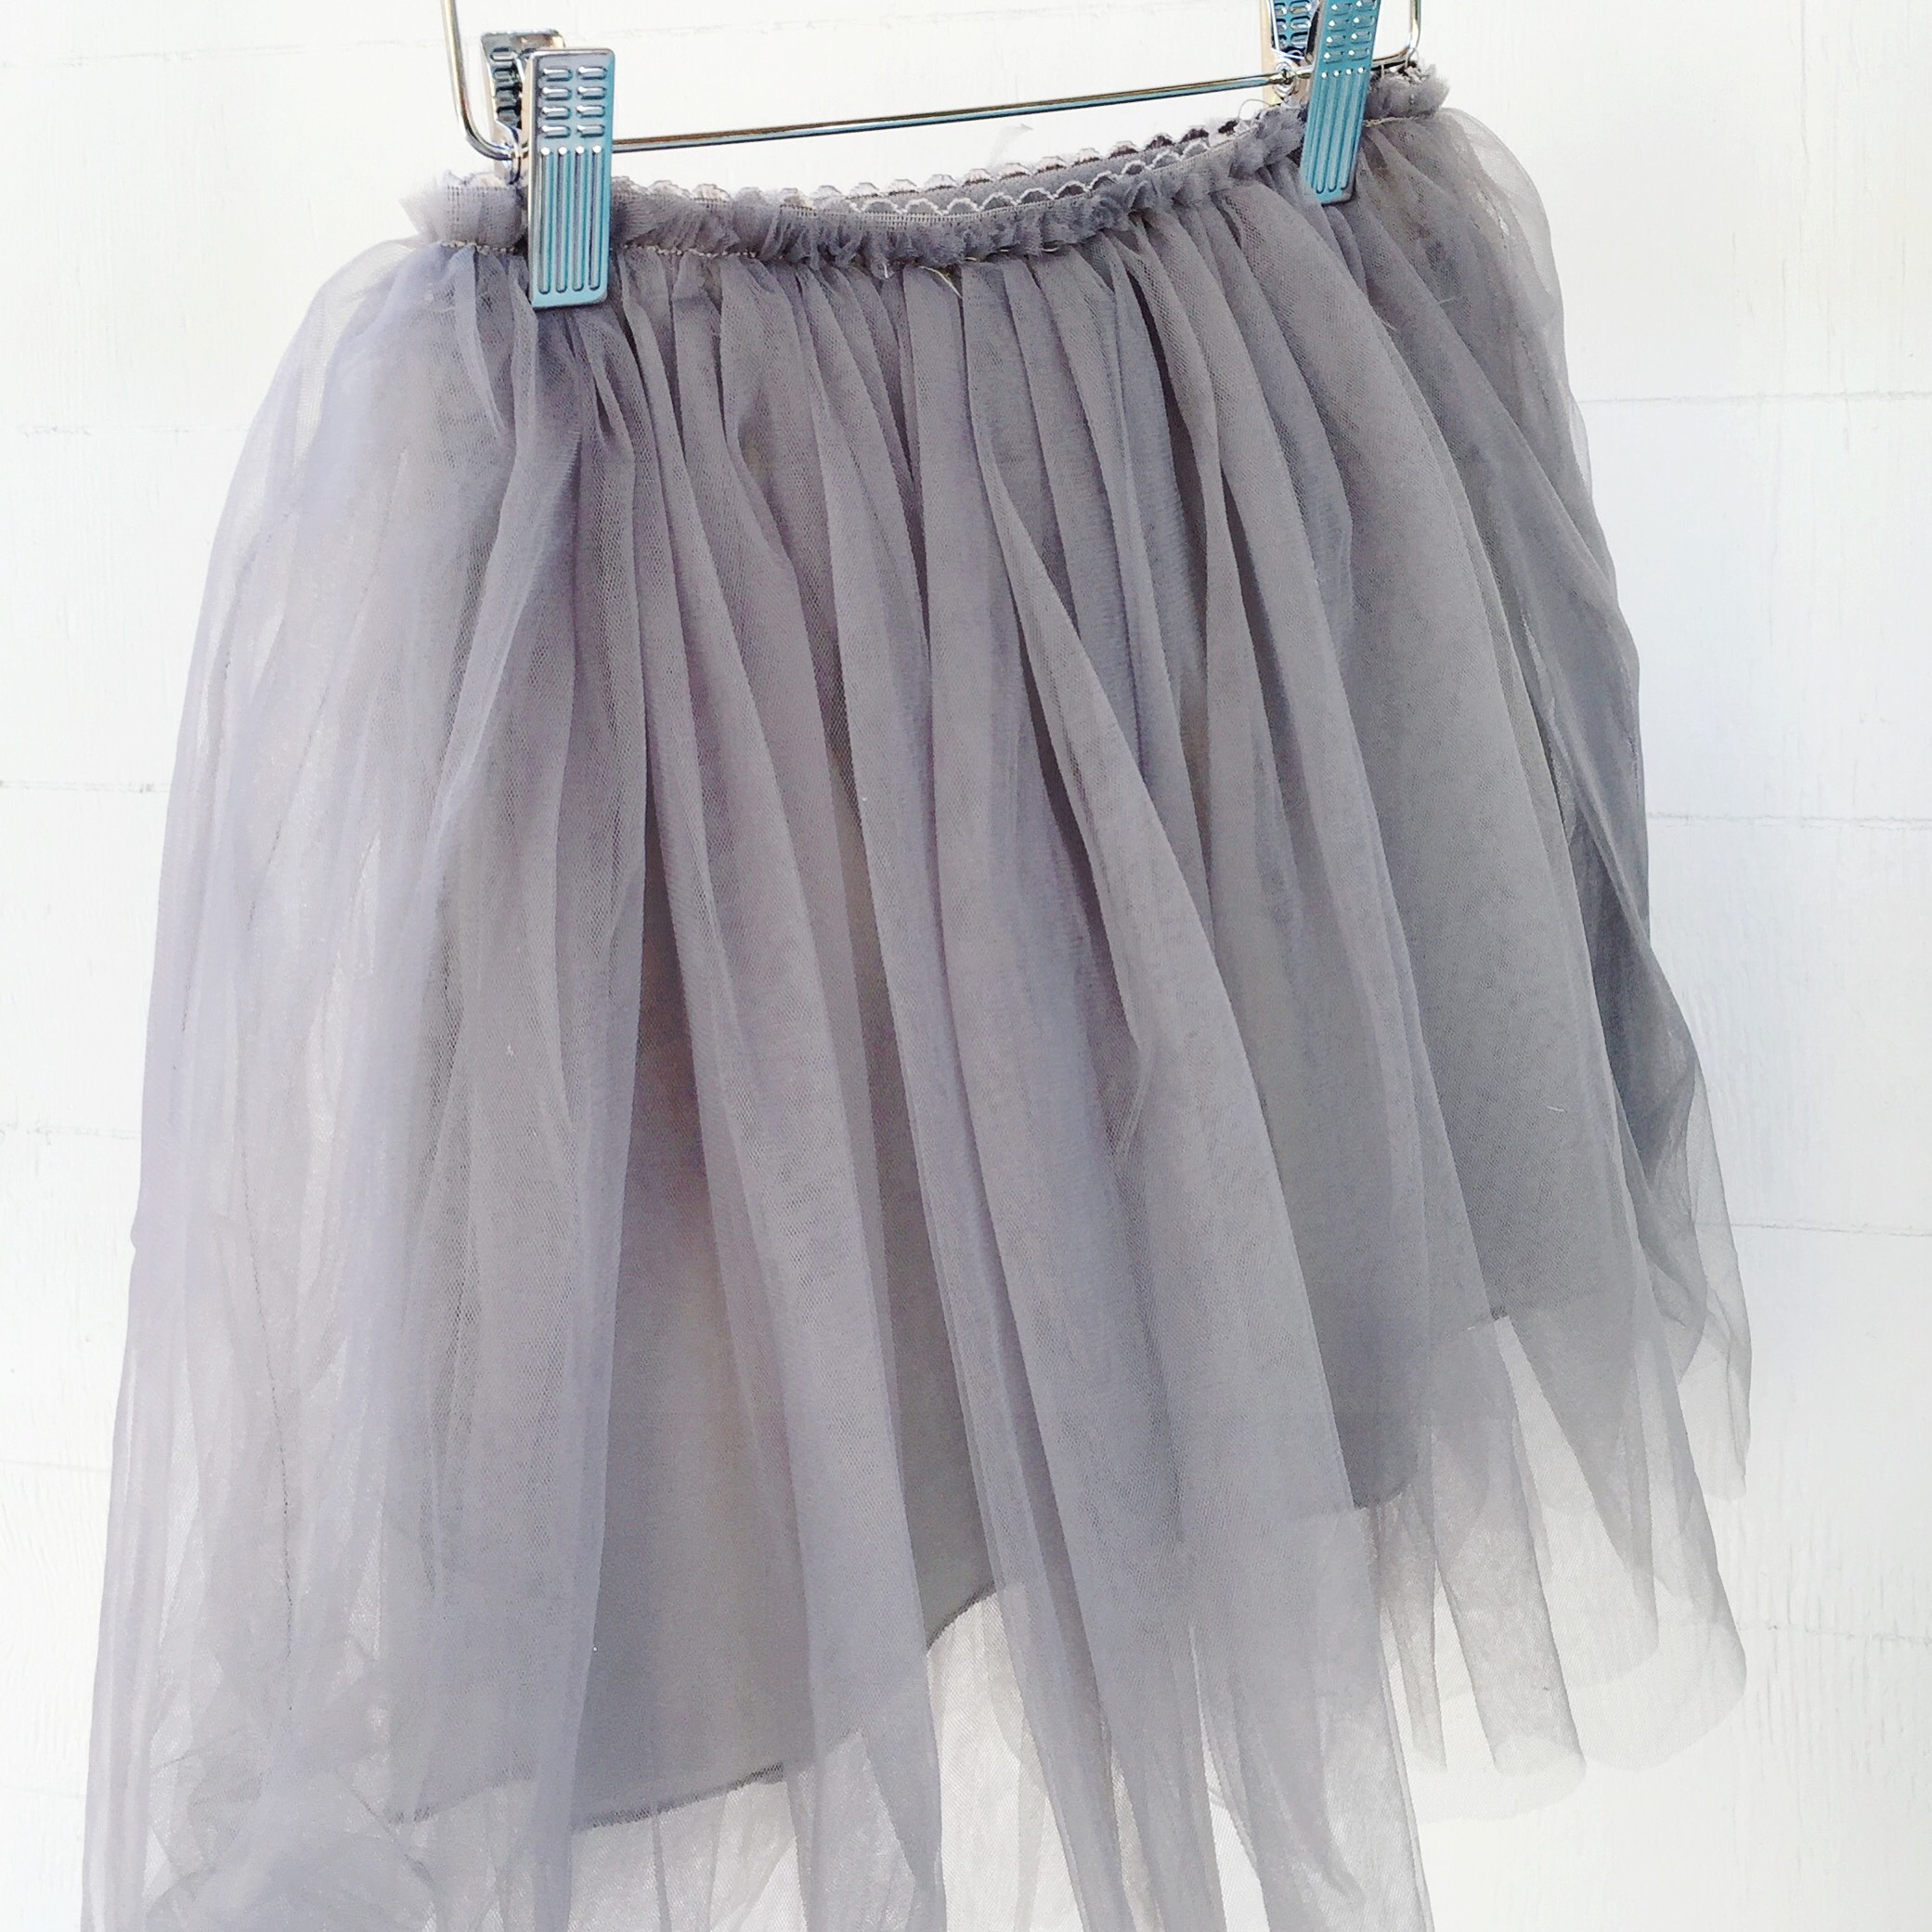 e575286d48 Gray Tulle Skirt · topknots and twirls · Online Store Powered by ...